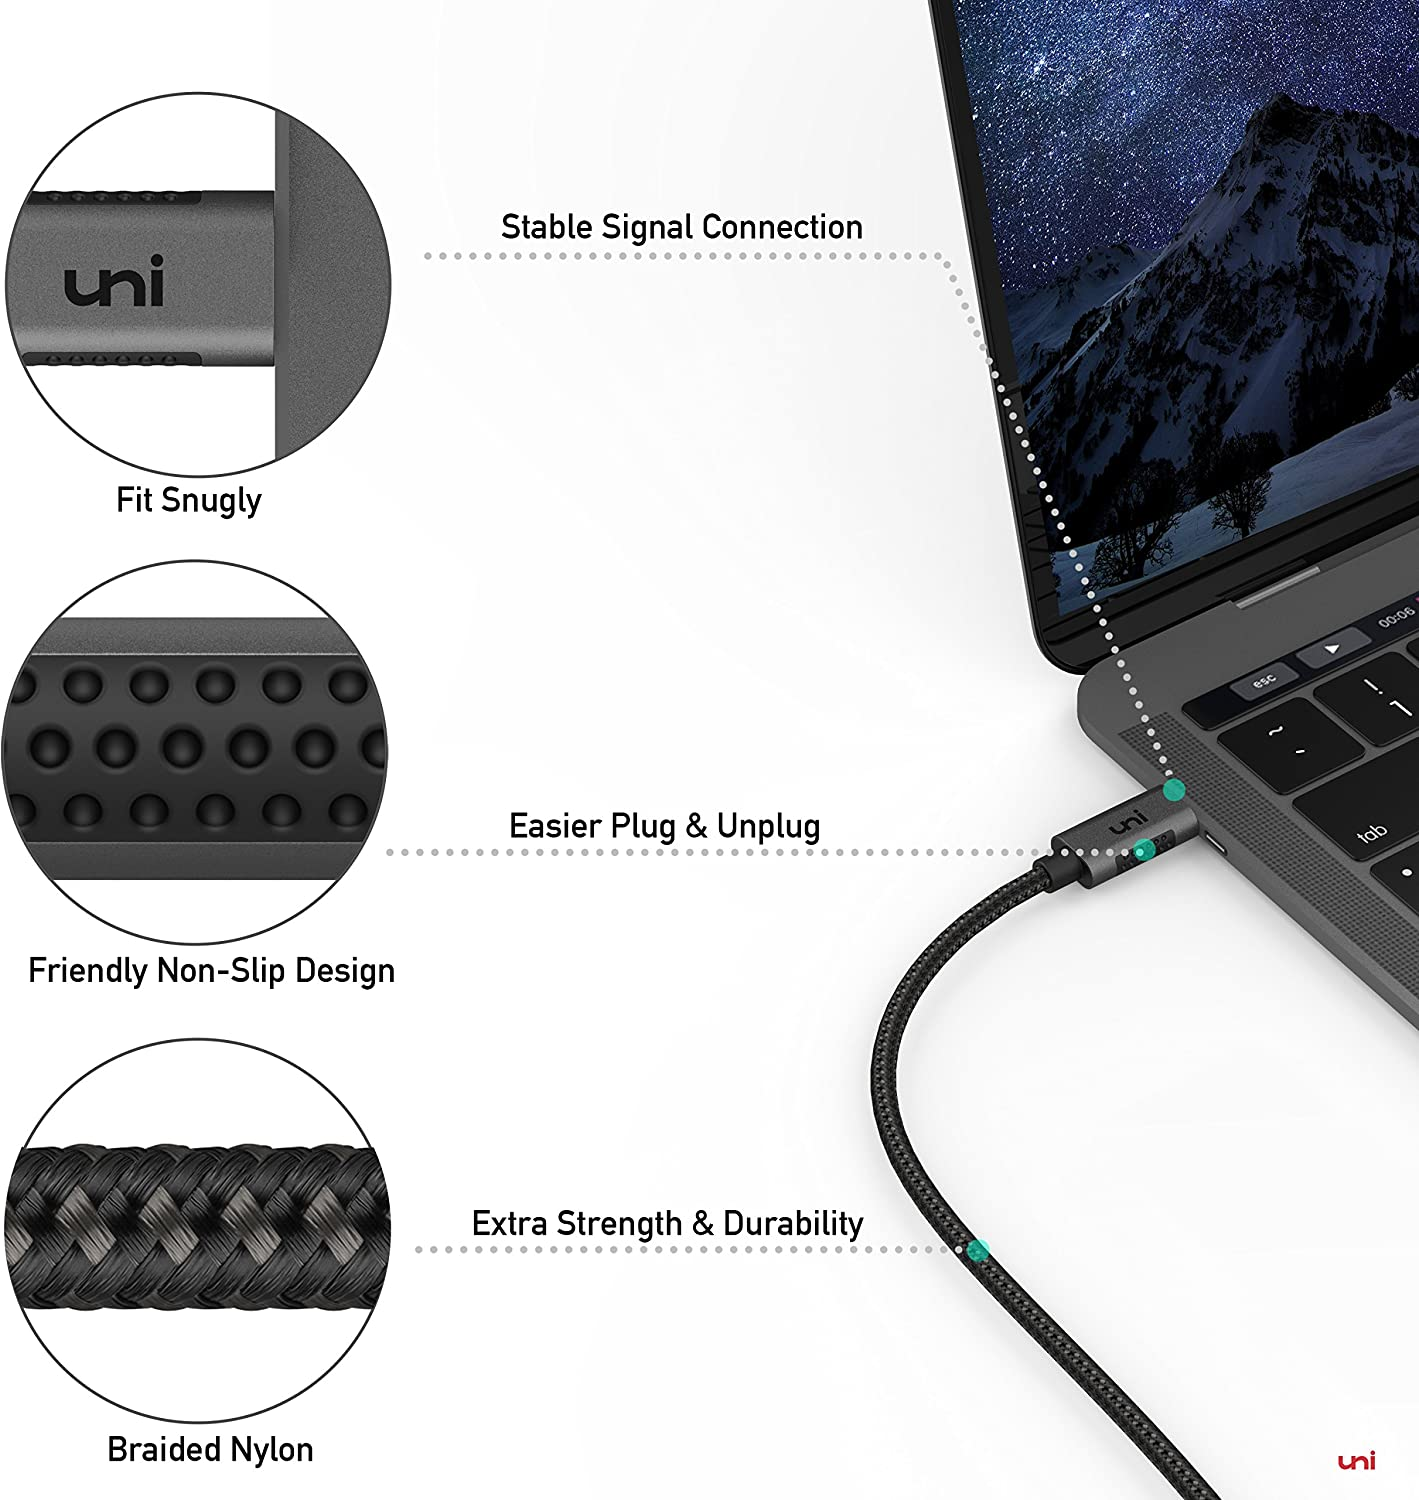 6ft 4K@60Hz MacBook Air//iPad Pro 2020 and More uni USB Type C to HDMI Cable USB C to HDMI Cable for Home Office Galaxy S20 Thunderbolt 3 Compatible for MacBook Pro 2019 Surface Book 2